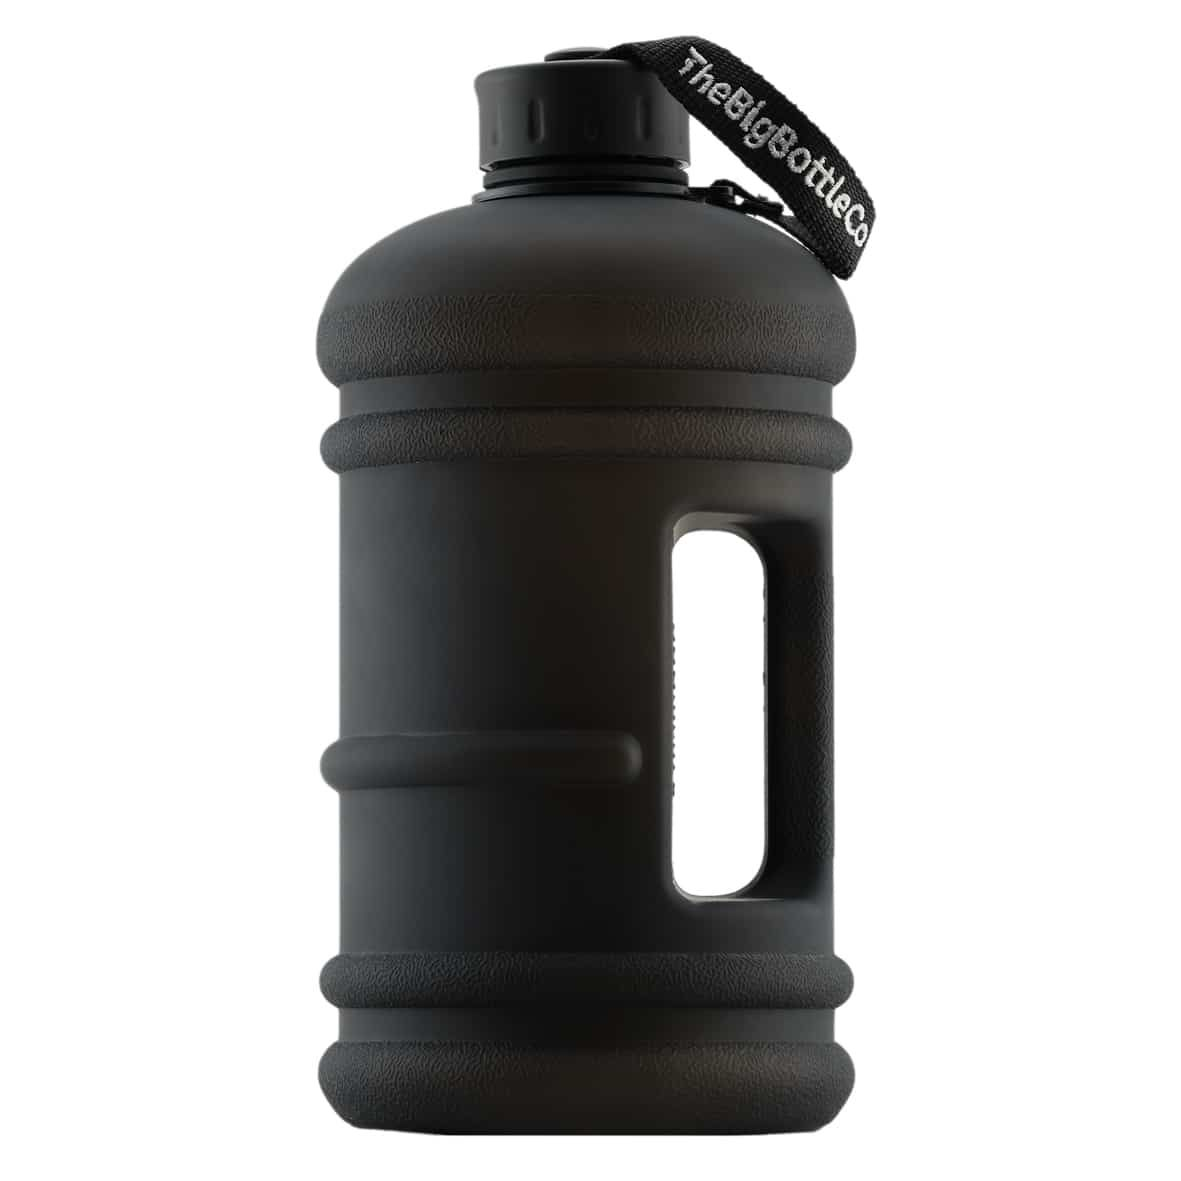 Big Bottle Elite Jet Black 2 2 Litre Reusable Water Bottle The Big Bottle Co Black Water Bottles Bottle 2l Water Bottle